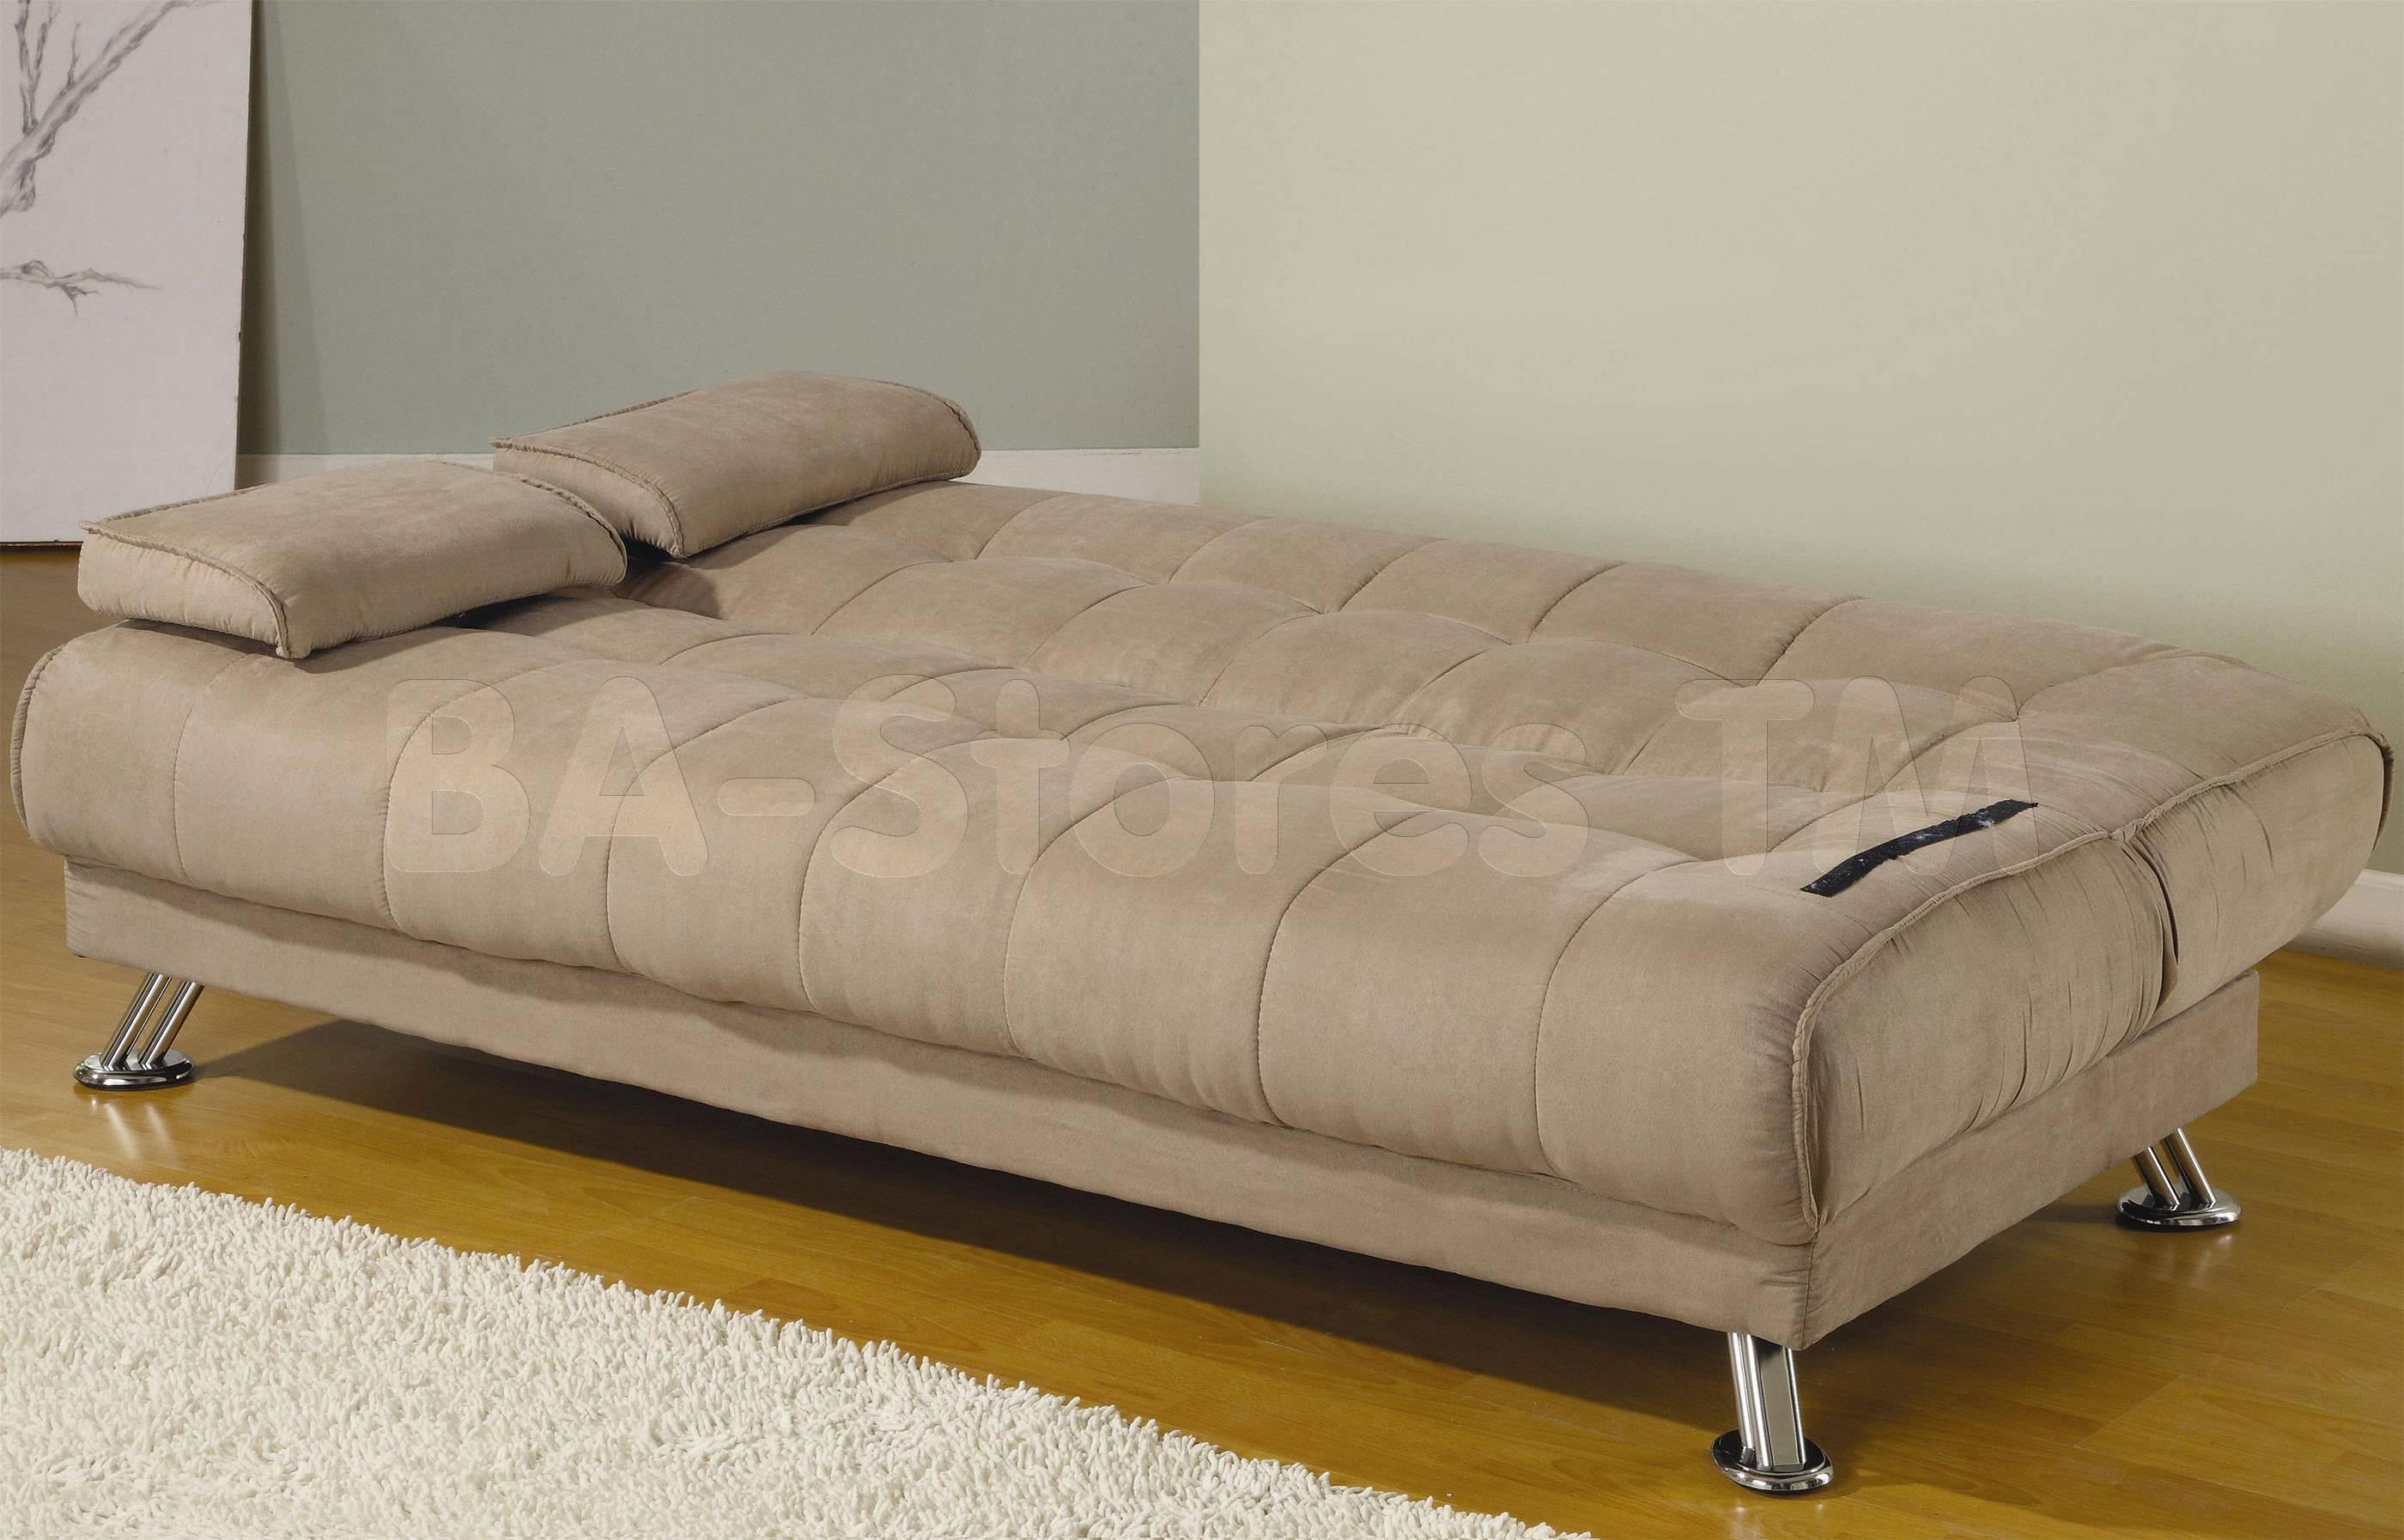 Full Size Sofa Bed Sheets | Tehranmix Decoration within Sofa Beds Sheets (Image 4 of 15)